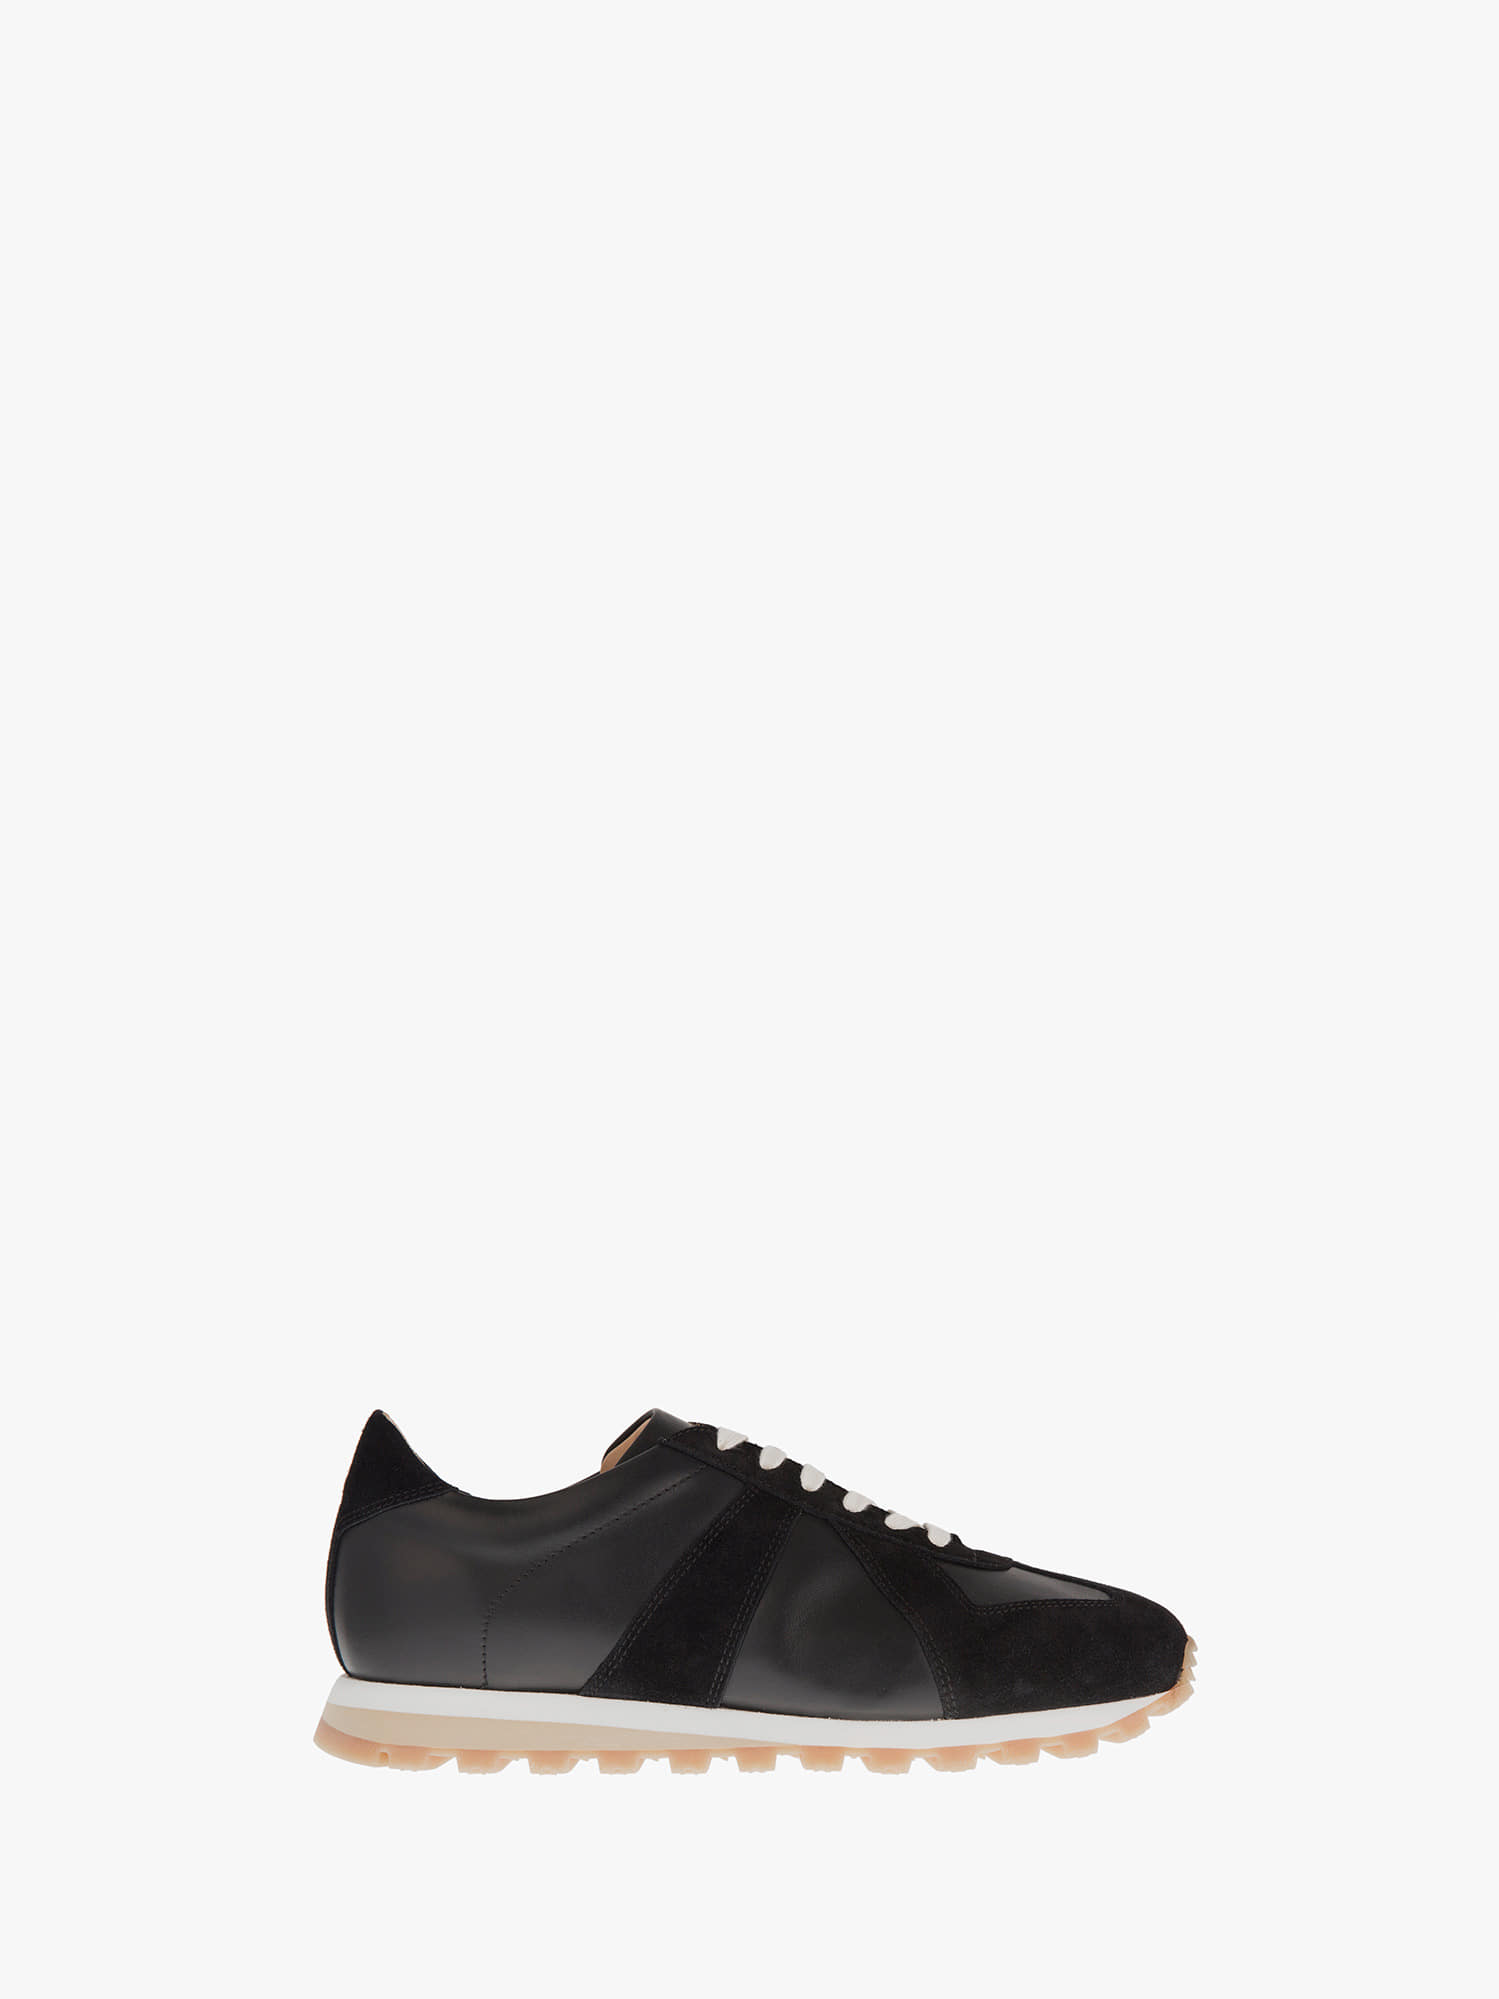 balmoral 07 suede leather black